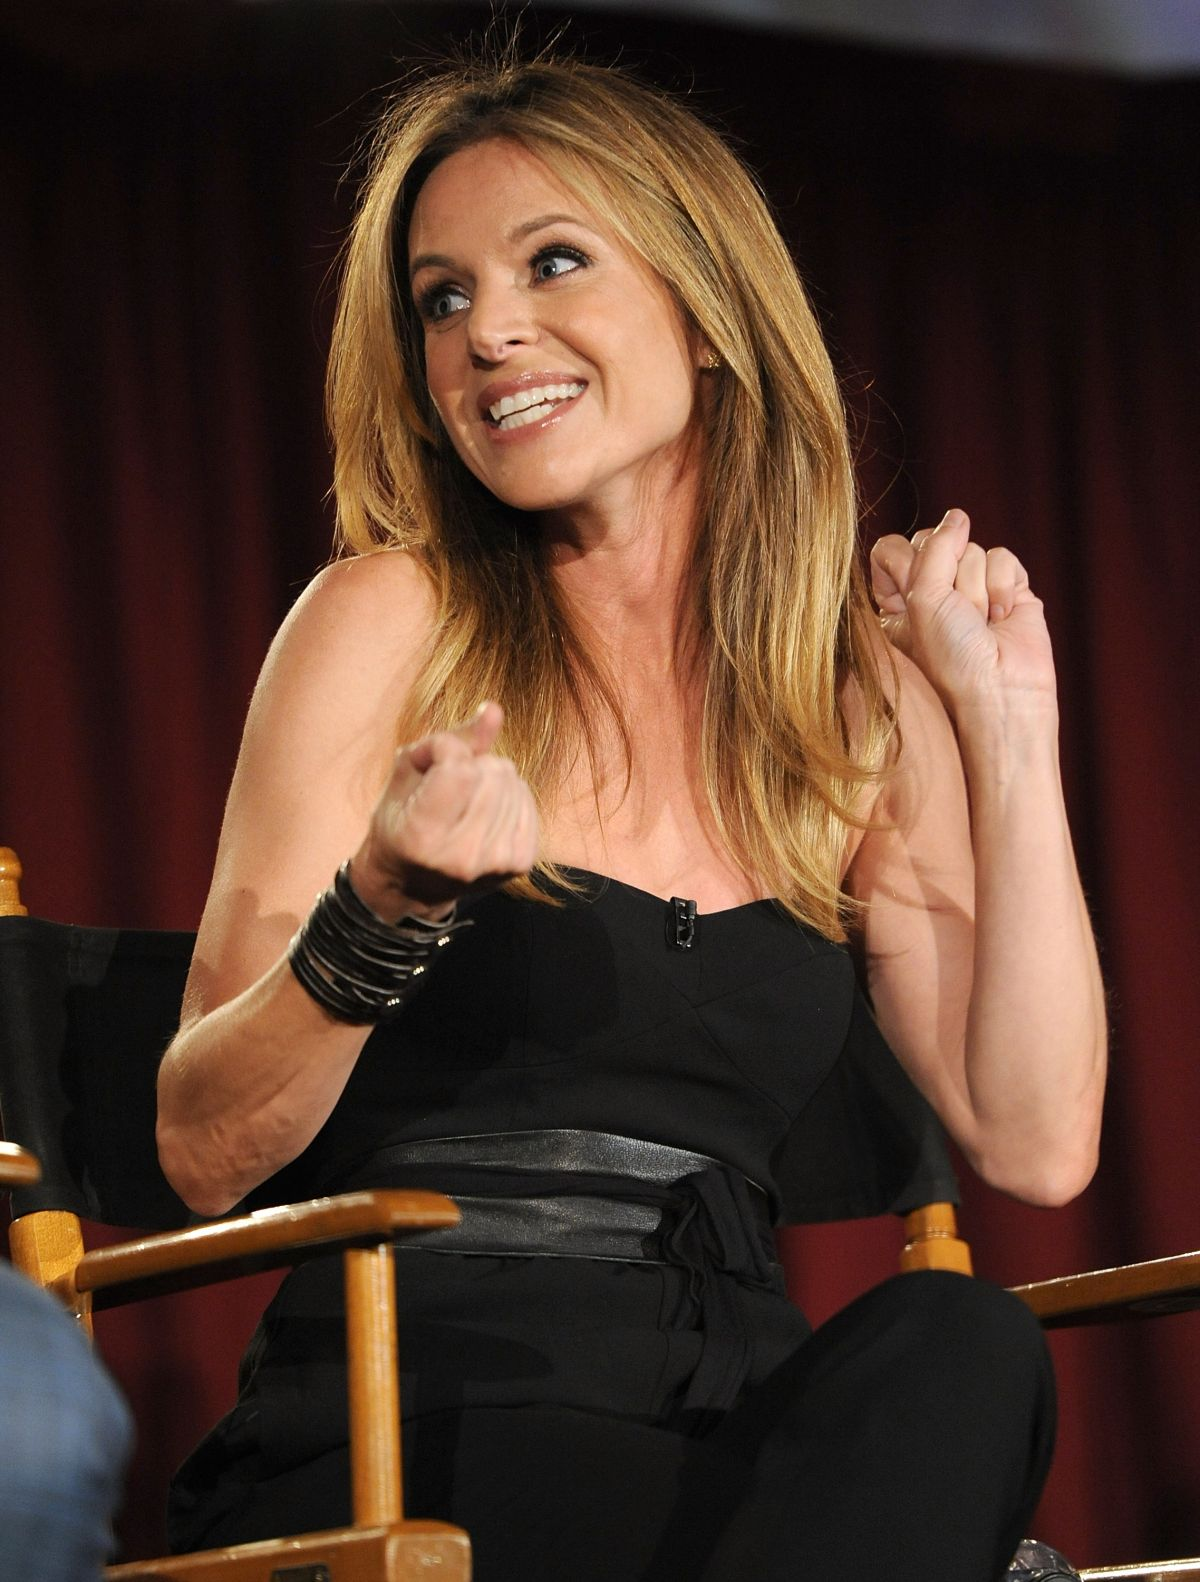 JESSALYN GILSIG at Vikings Panel Discussion in Hollywood